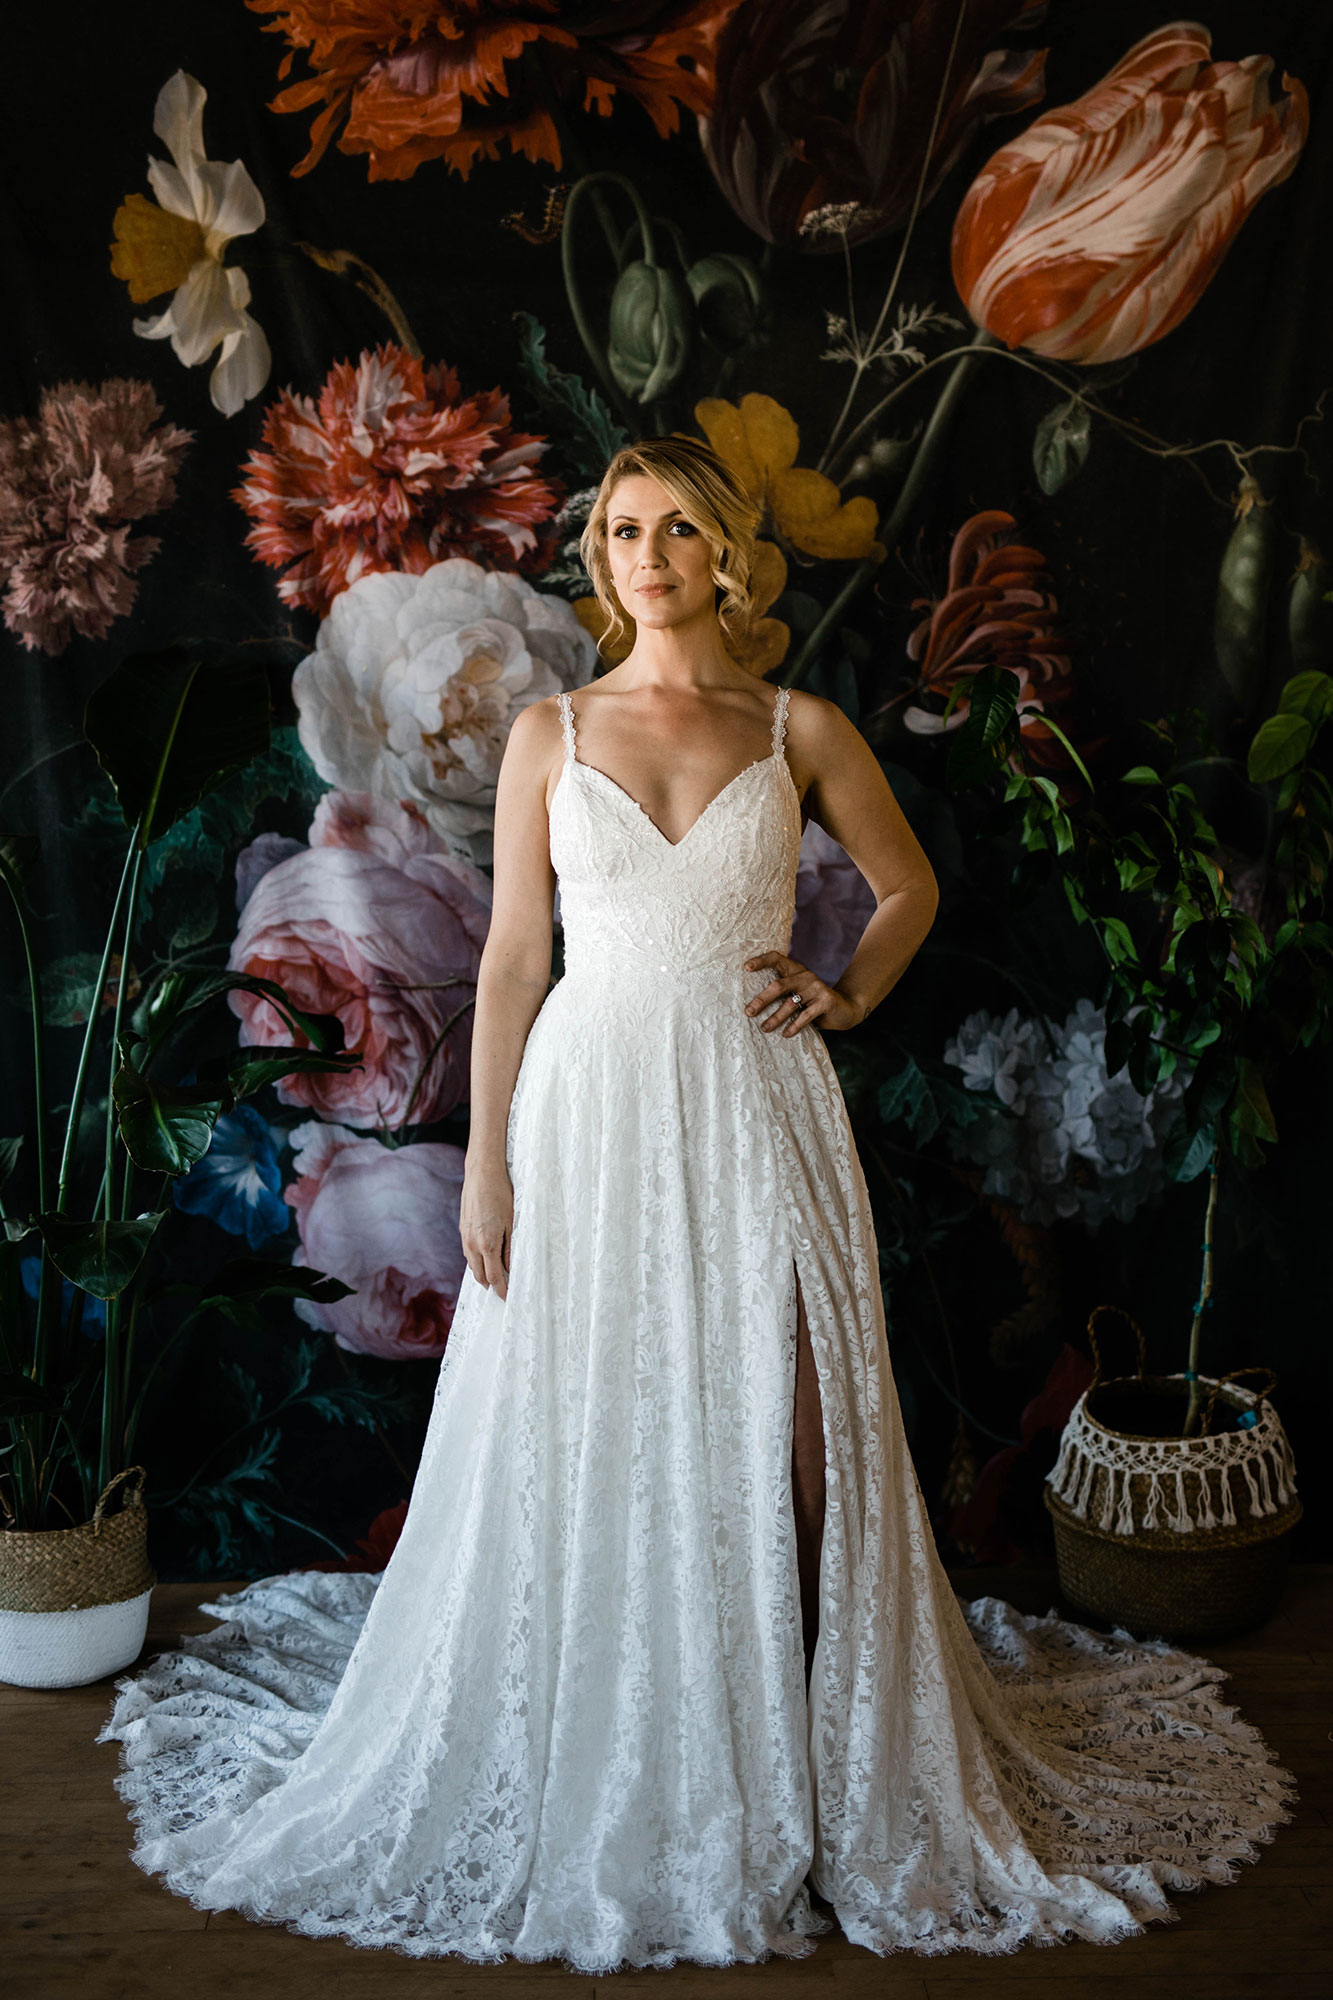 The Bethany Wedding Dress by Audrey Joyce for Urban Set Bride